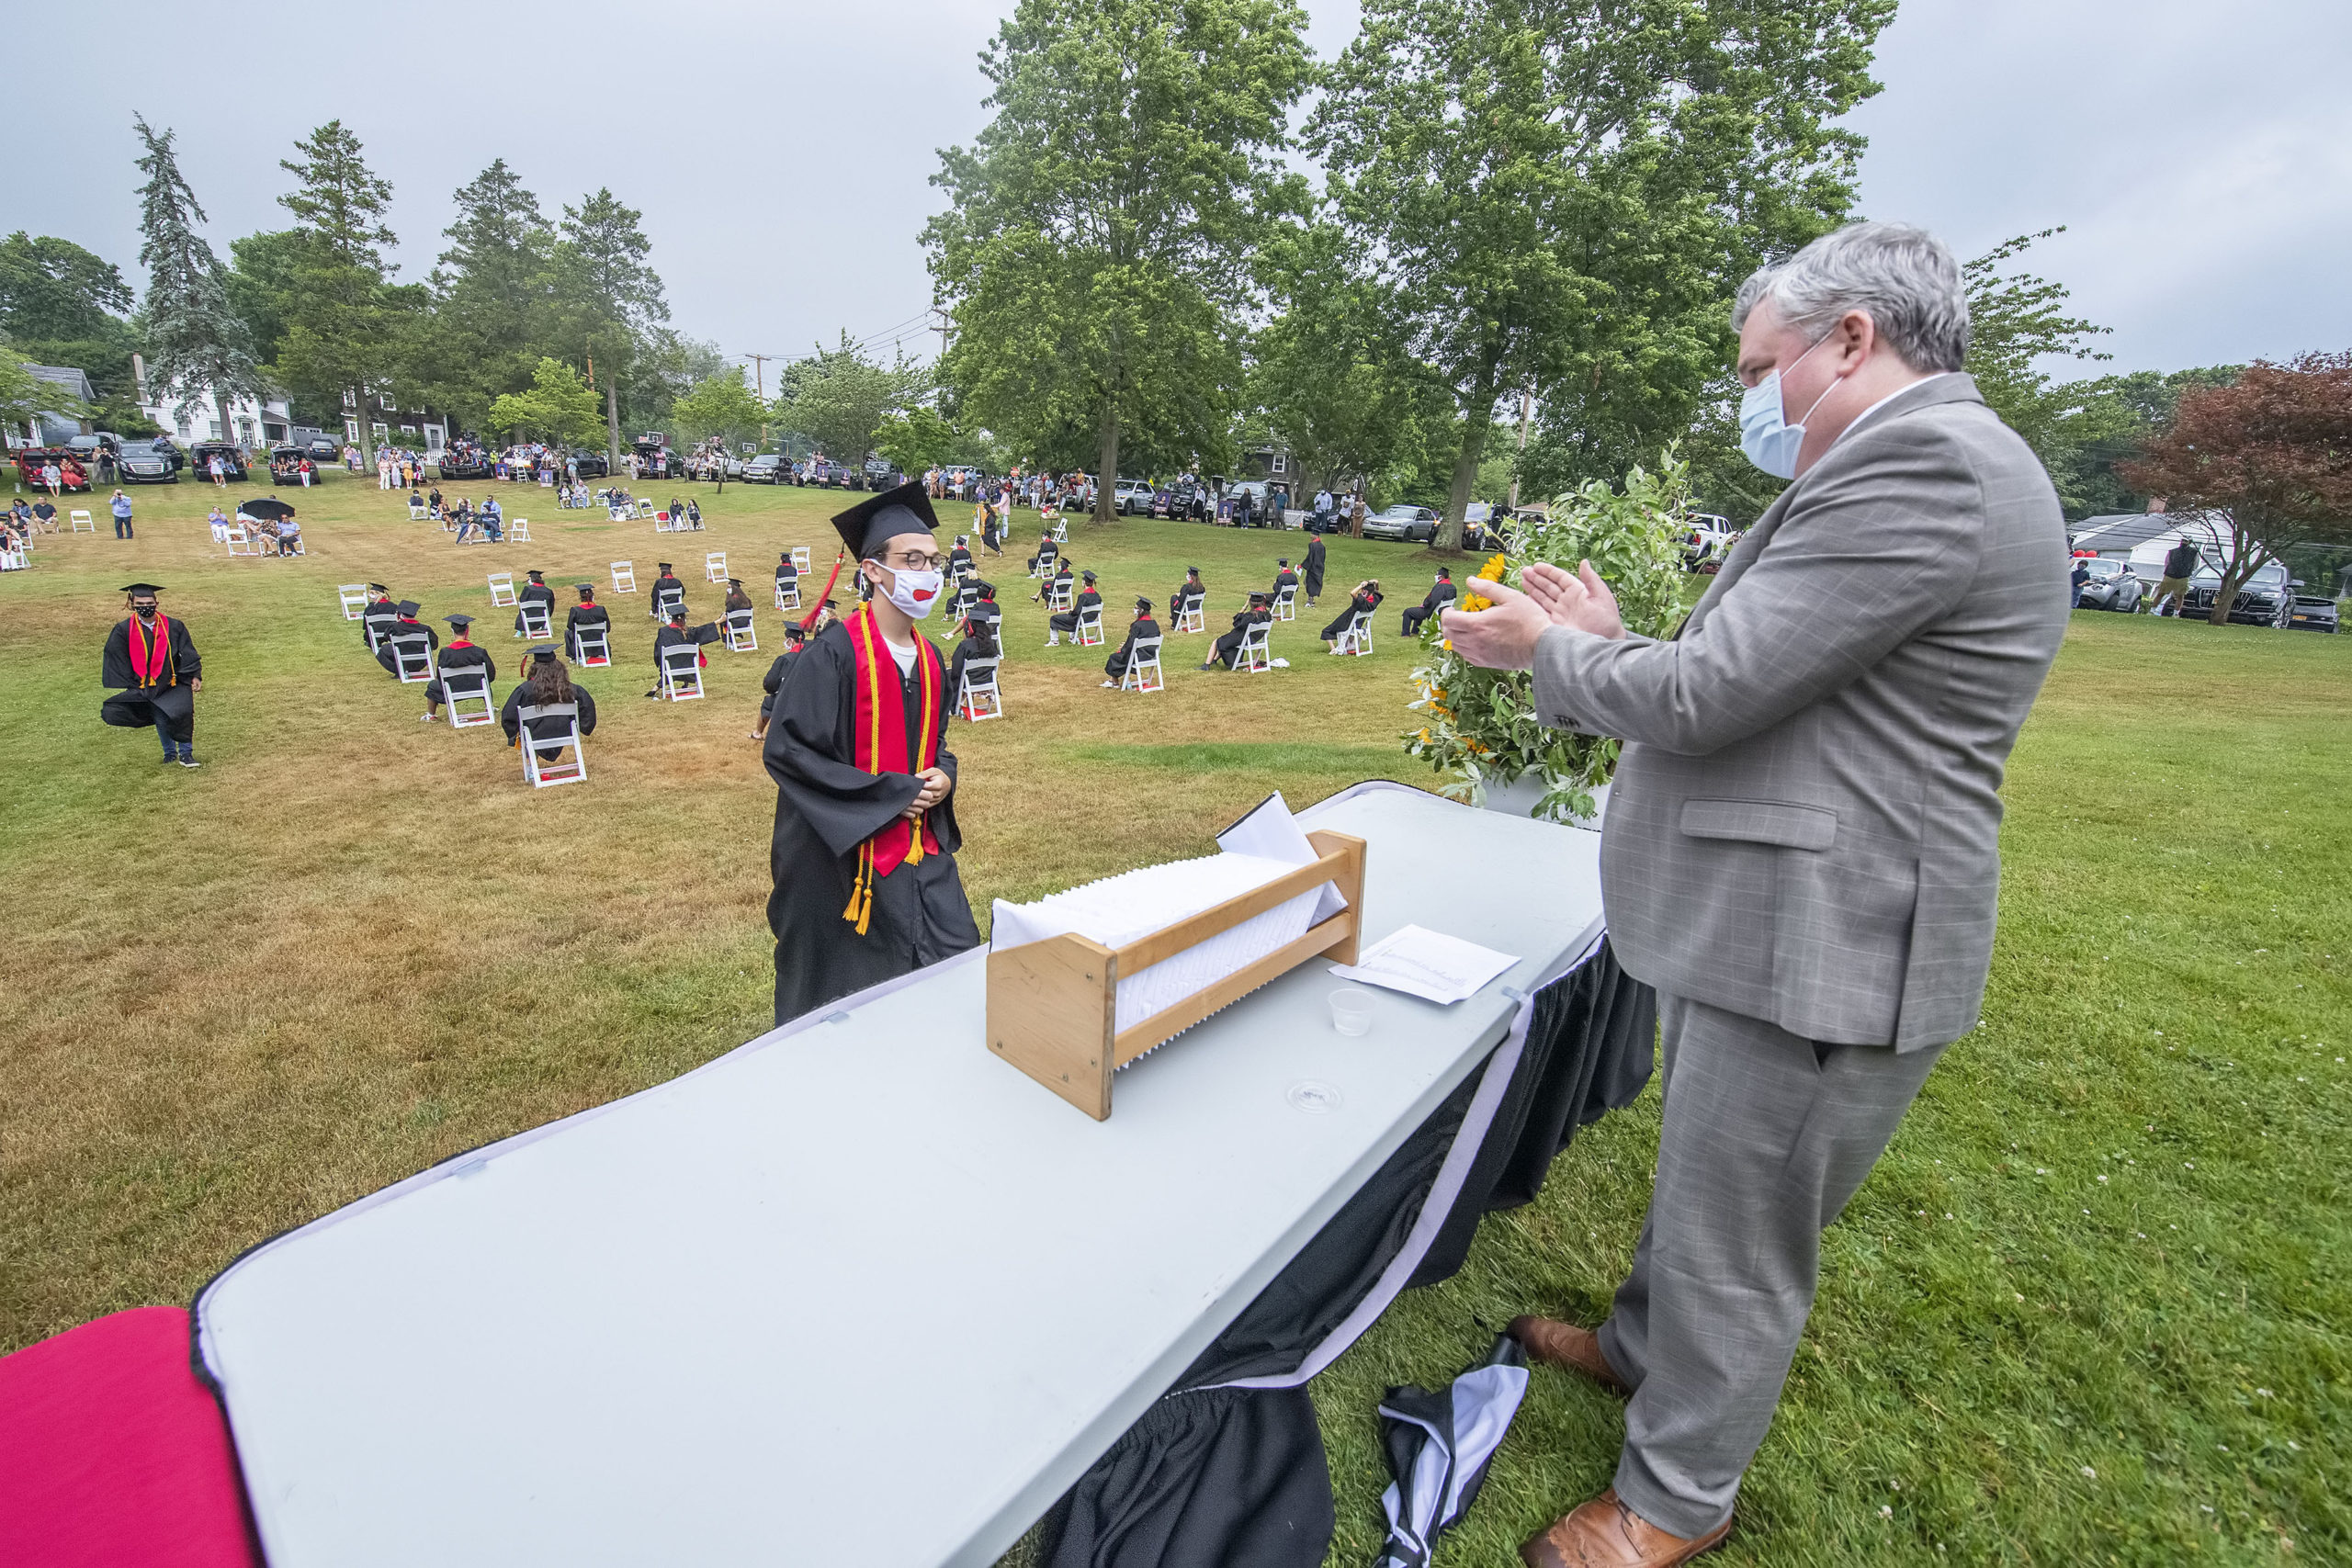 Pierson High School Assistant Principal Mike Guinan applauds Yanni Bitis as he steps up to take his diploma during the Pierson High School 2020 Commencement Ceremony at Pierson High School on Saturday.